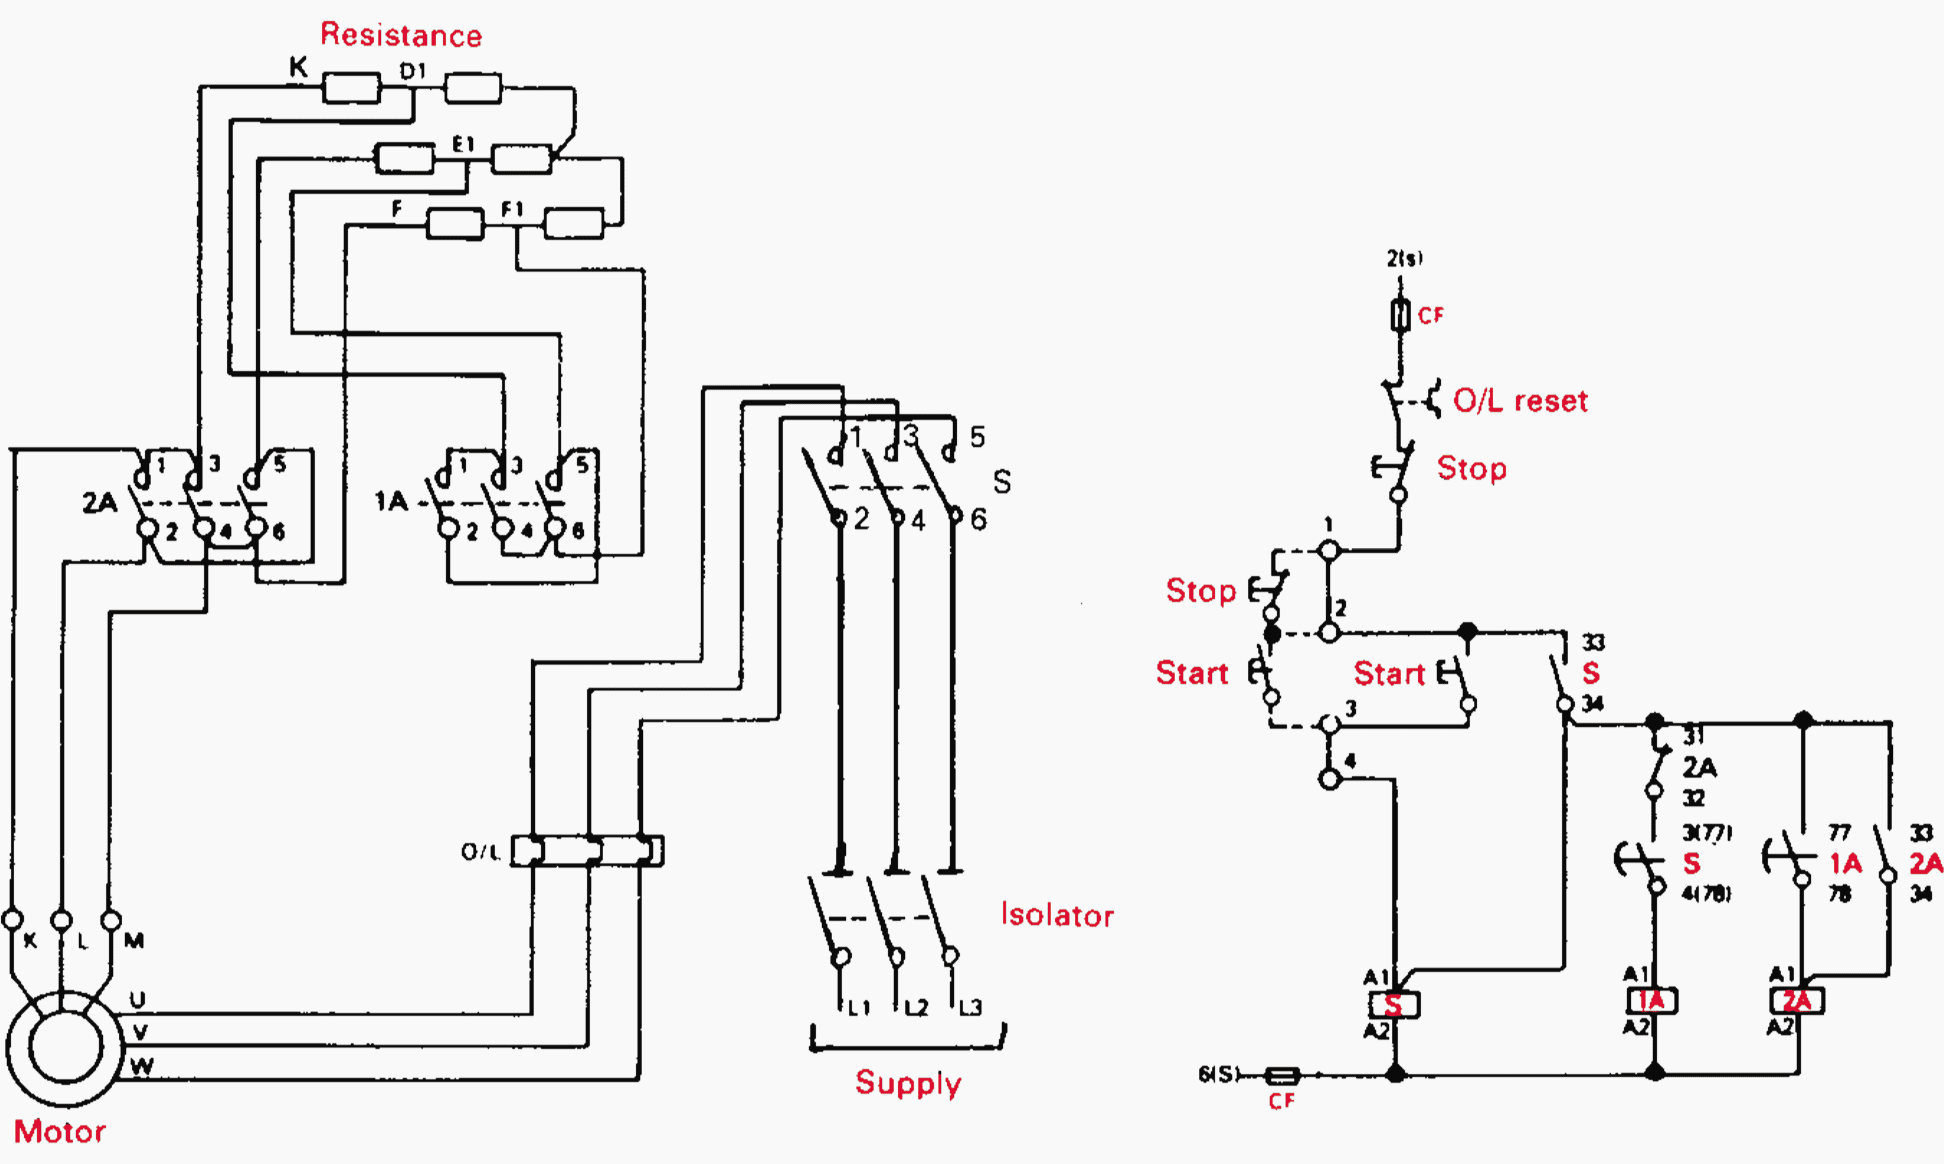 Contactor As An Important Part Of The Motor Control Gear